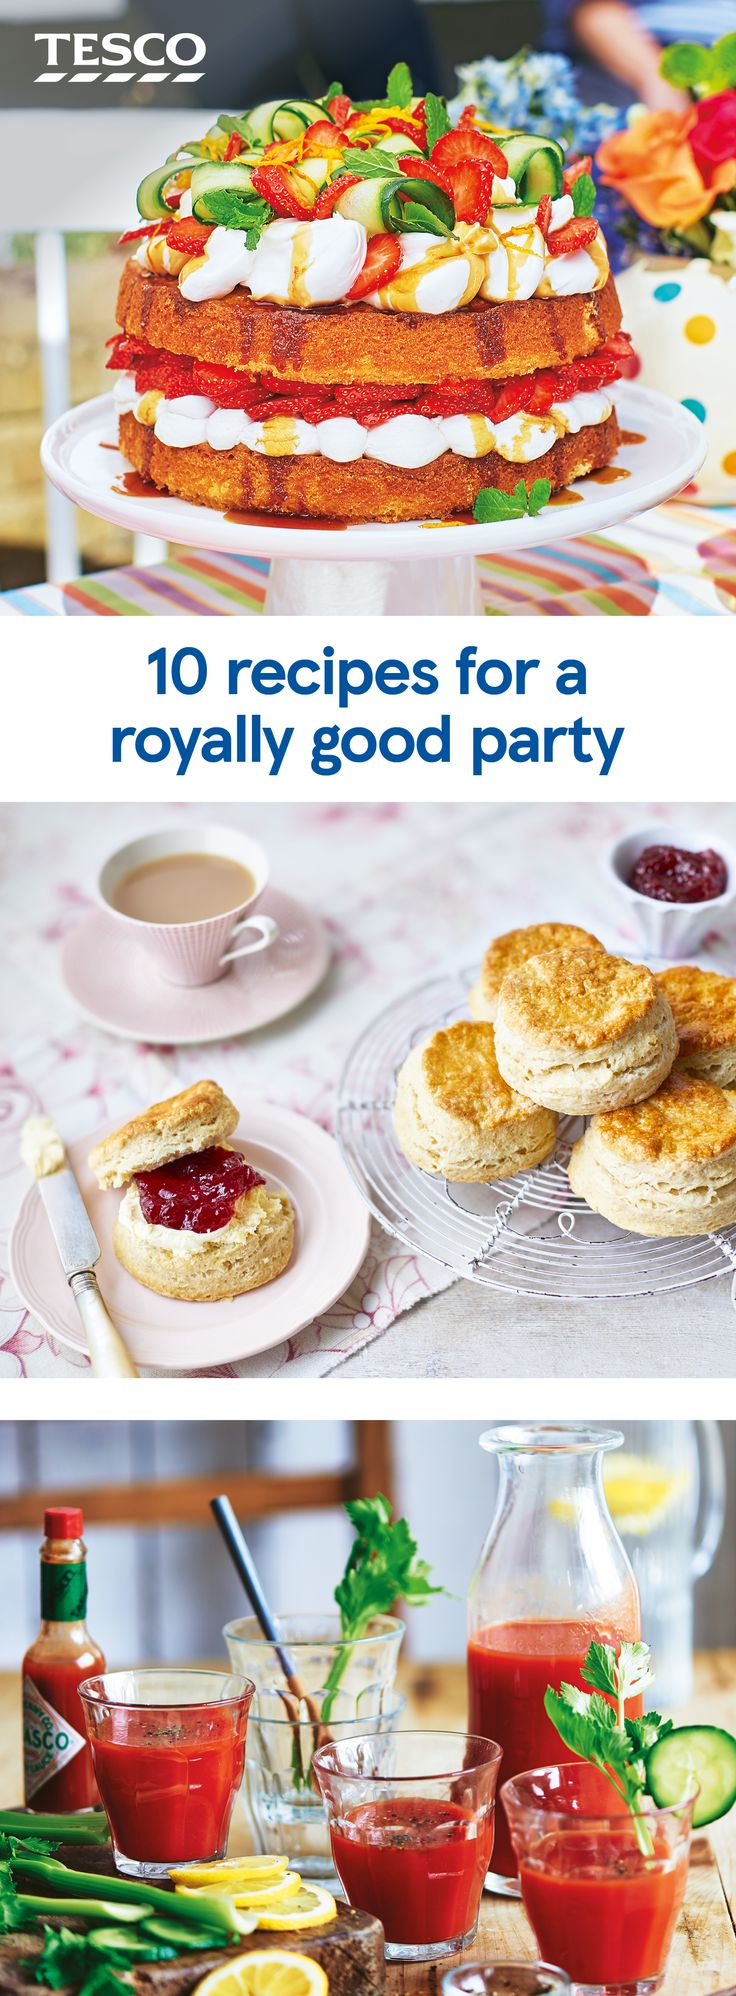 The 106 best Party Time | Tesco images on Pinterest | Canapes ...